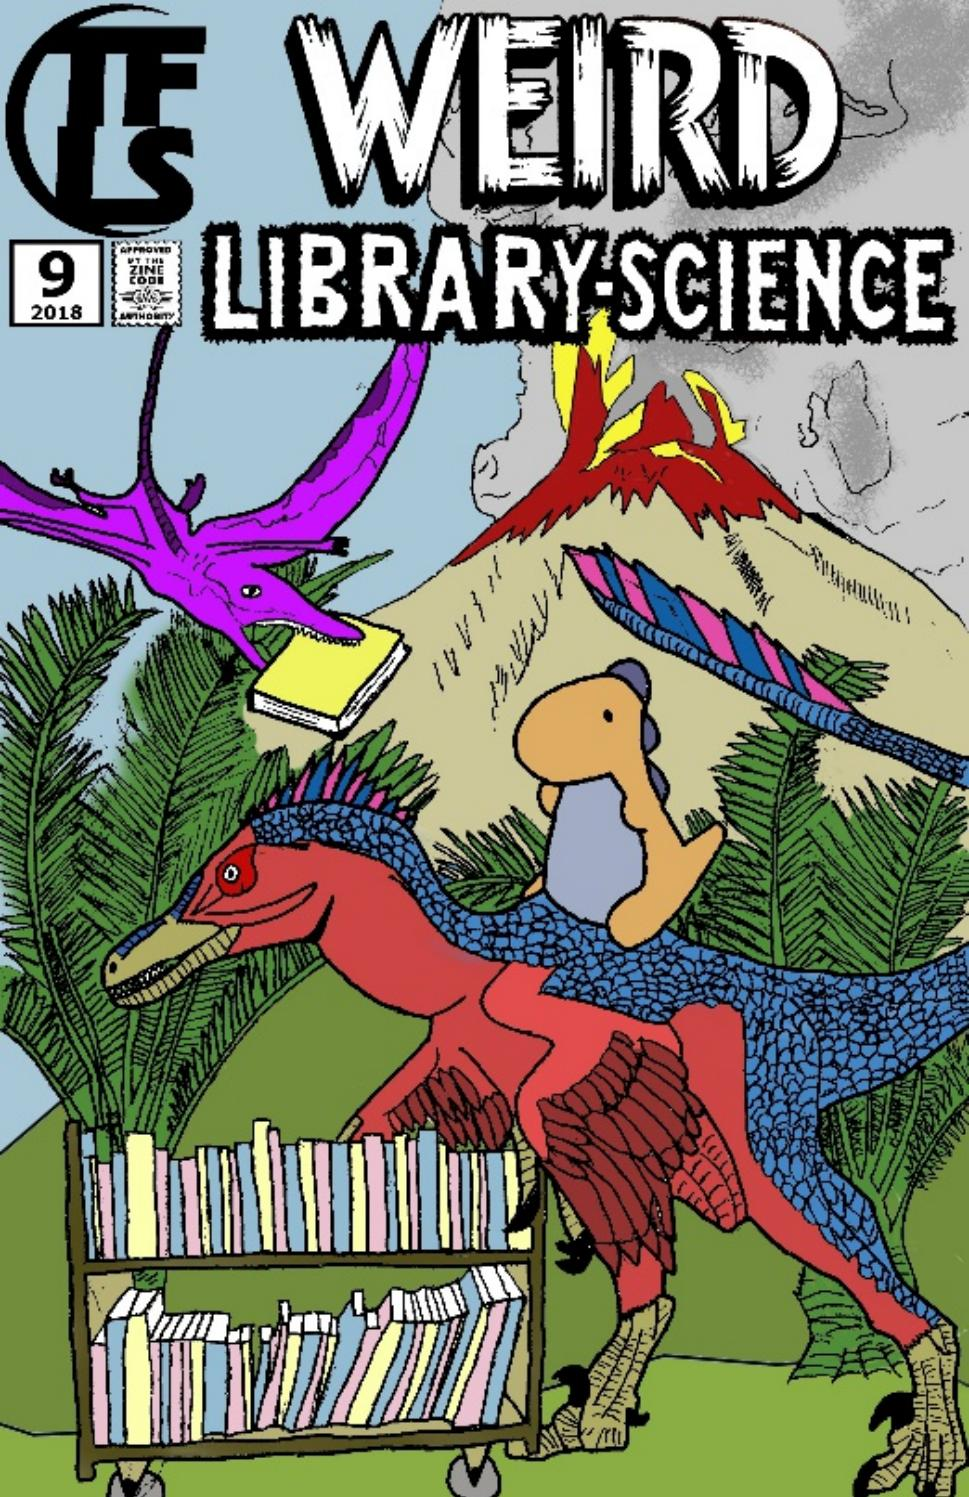 Cover of Two-Fisted Library Stories #9: Weird Library-Science